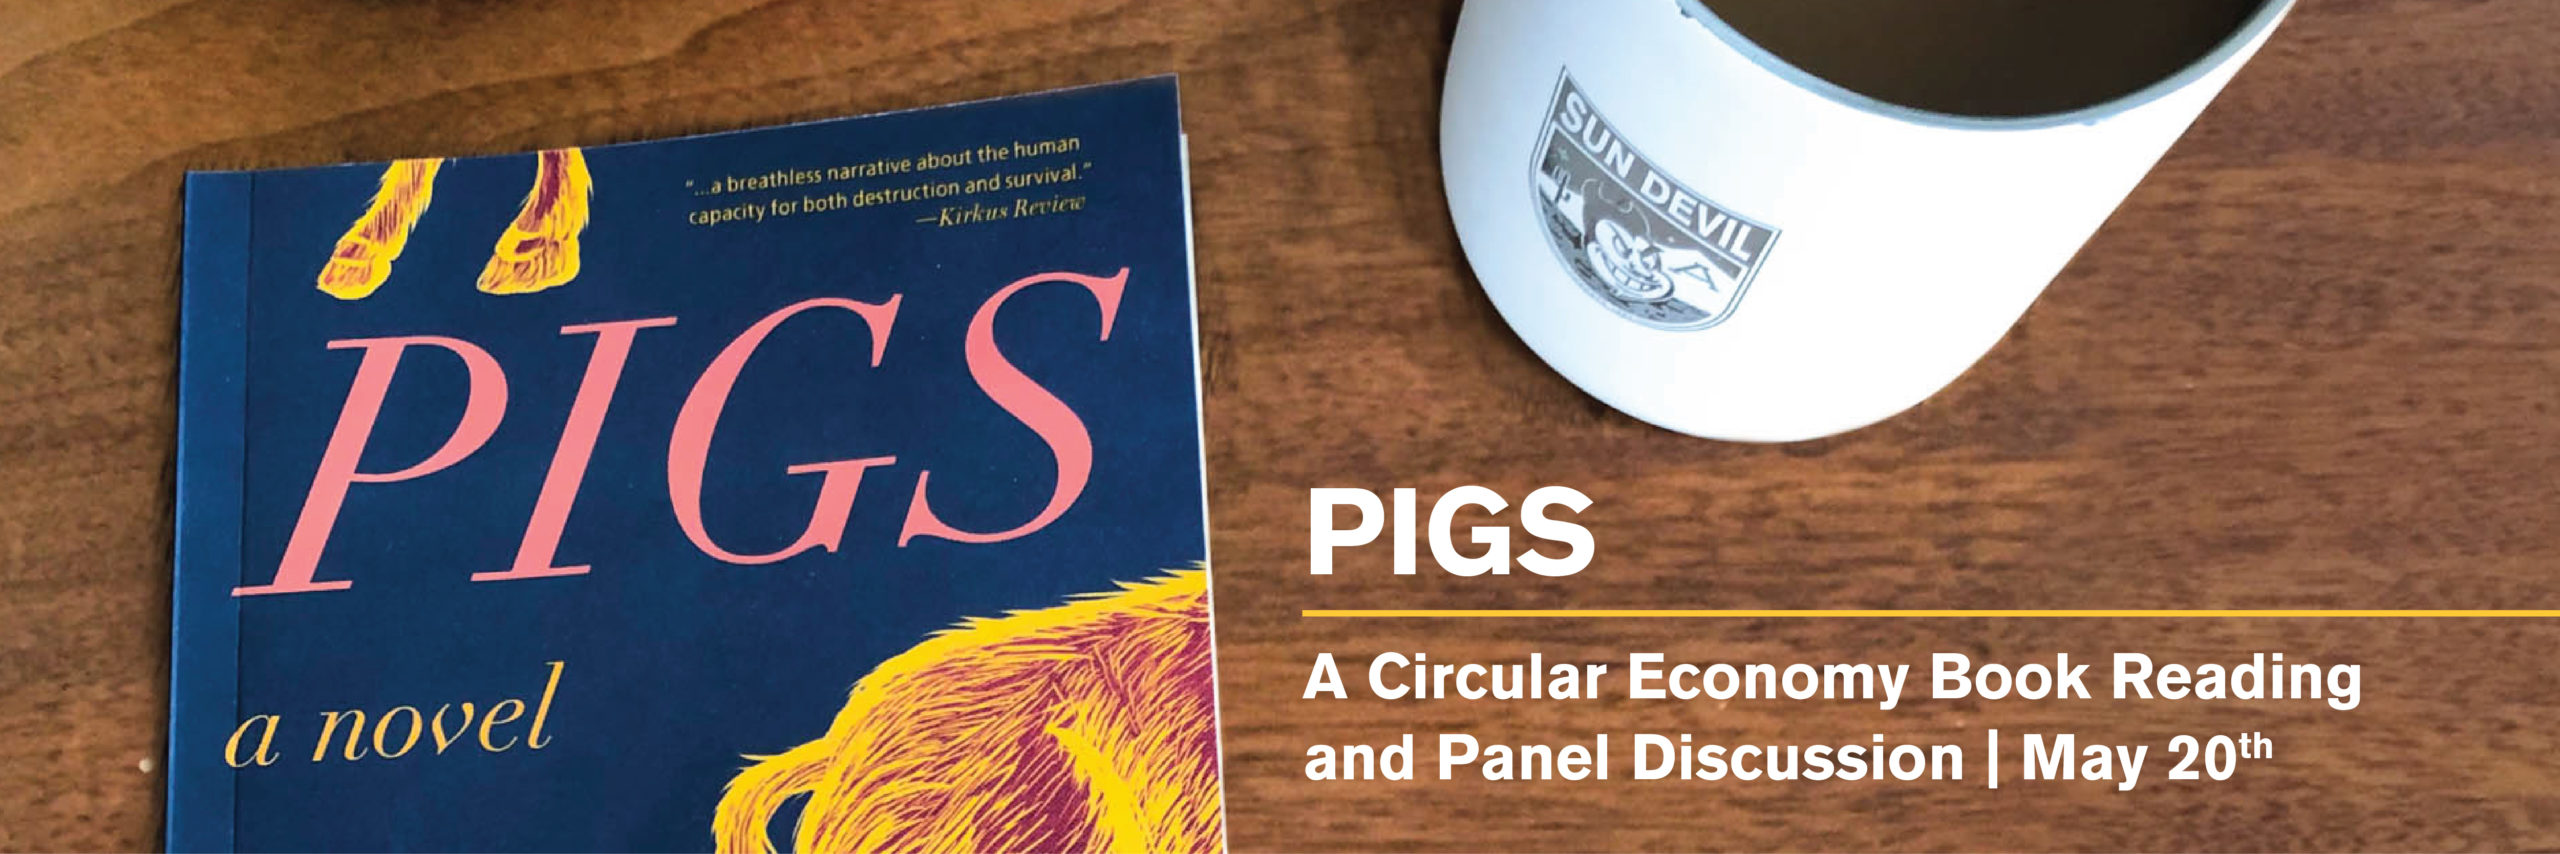 Pigs Book Reading